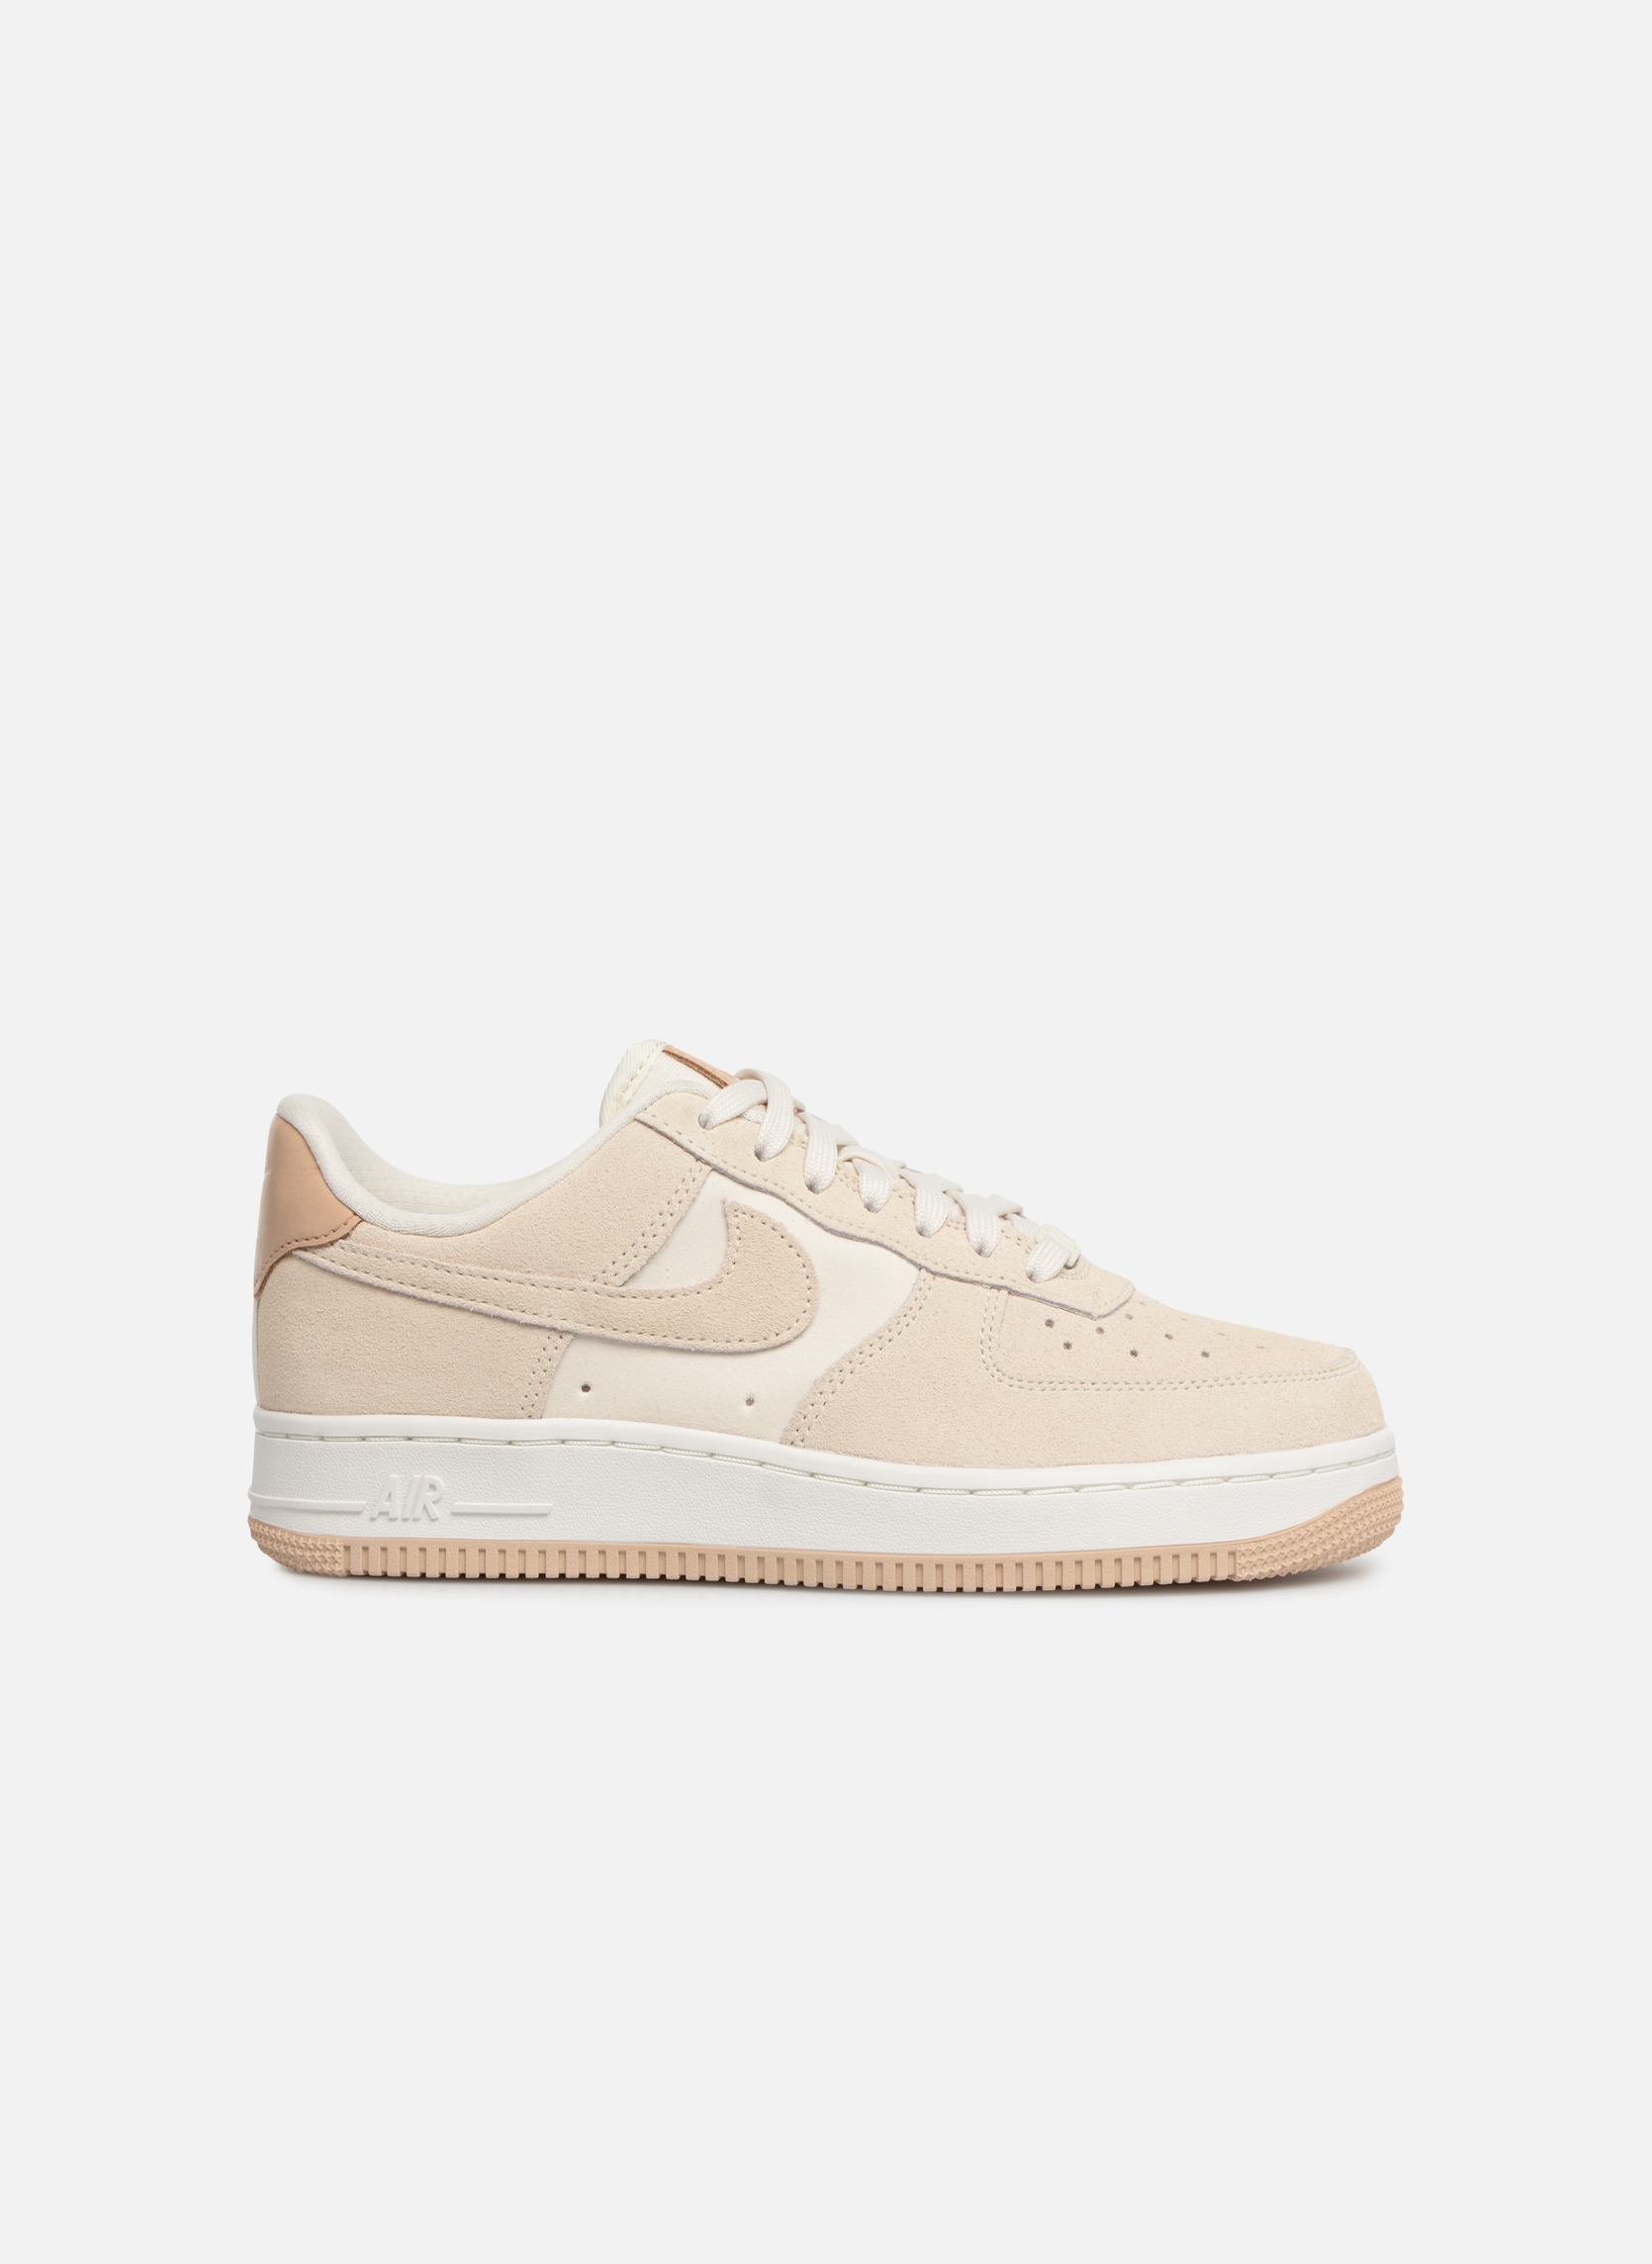 Wmns Air Force 1 '07 Prm